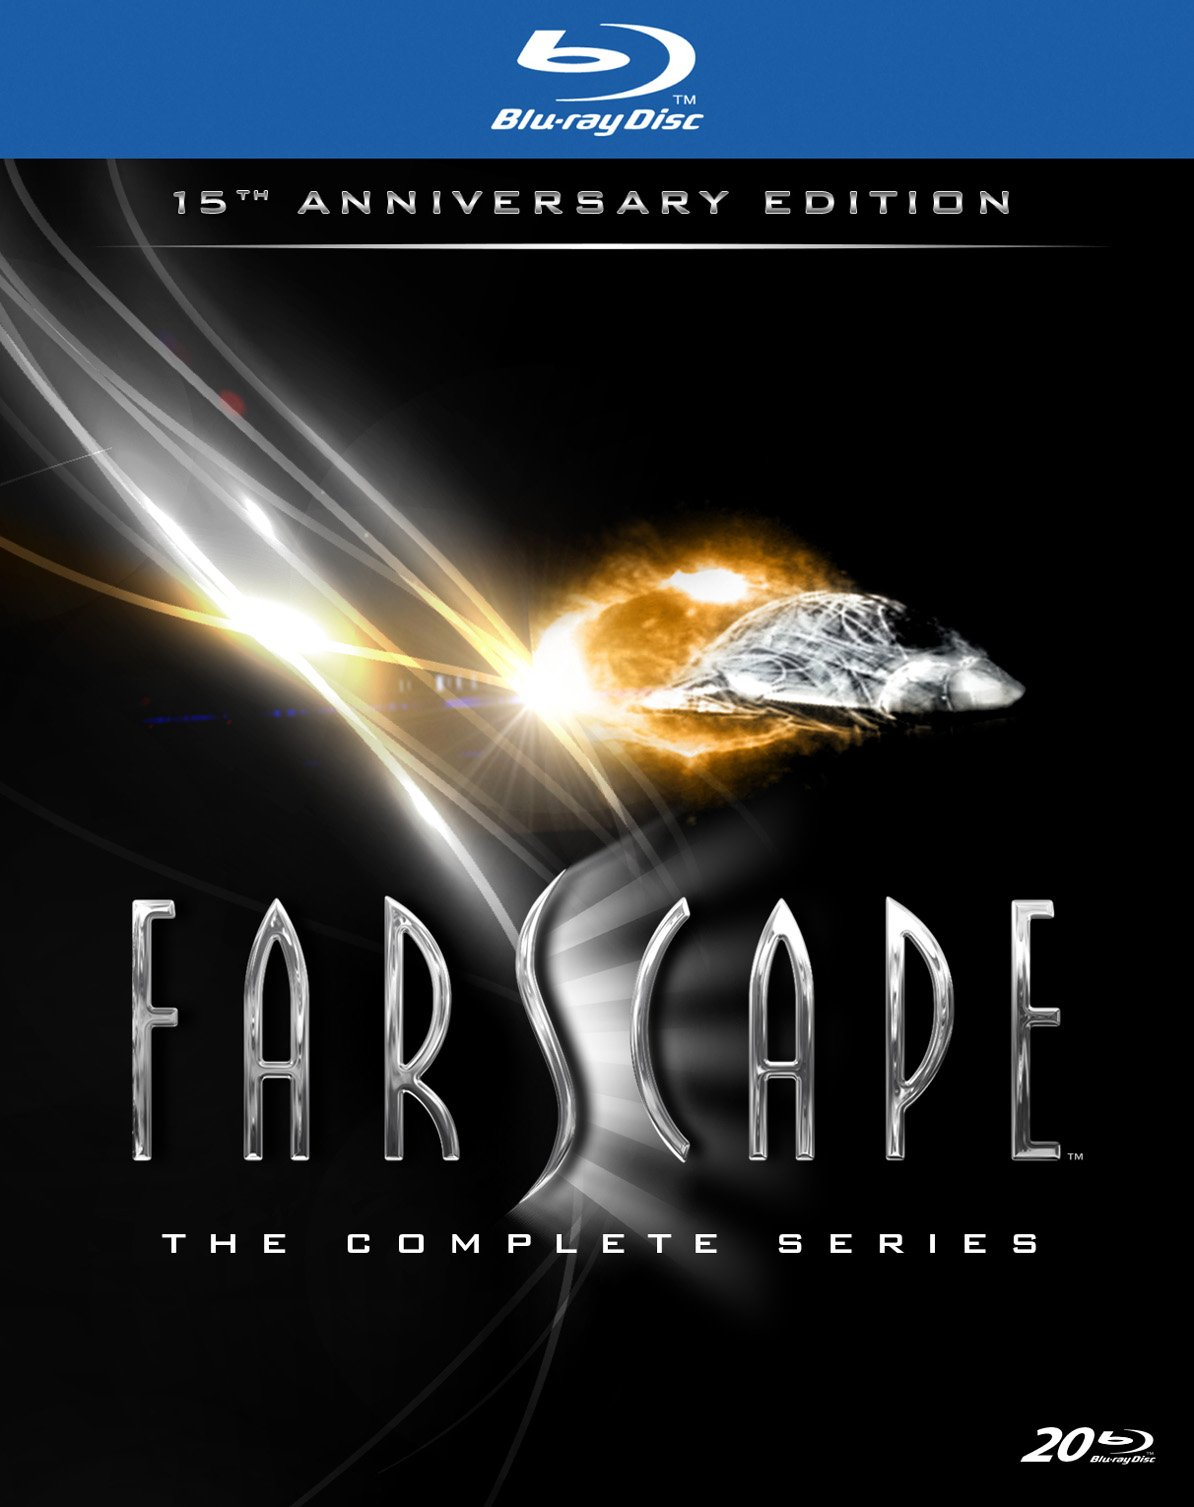 Farscape: The Complete Series (15th Anniversary Edition) [Blu-ray] by New Video Group